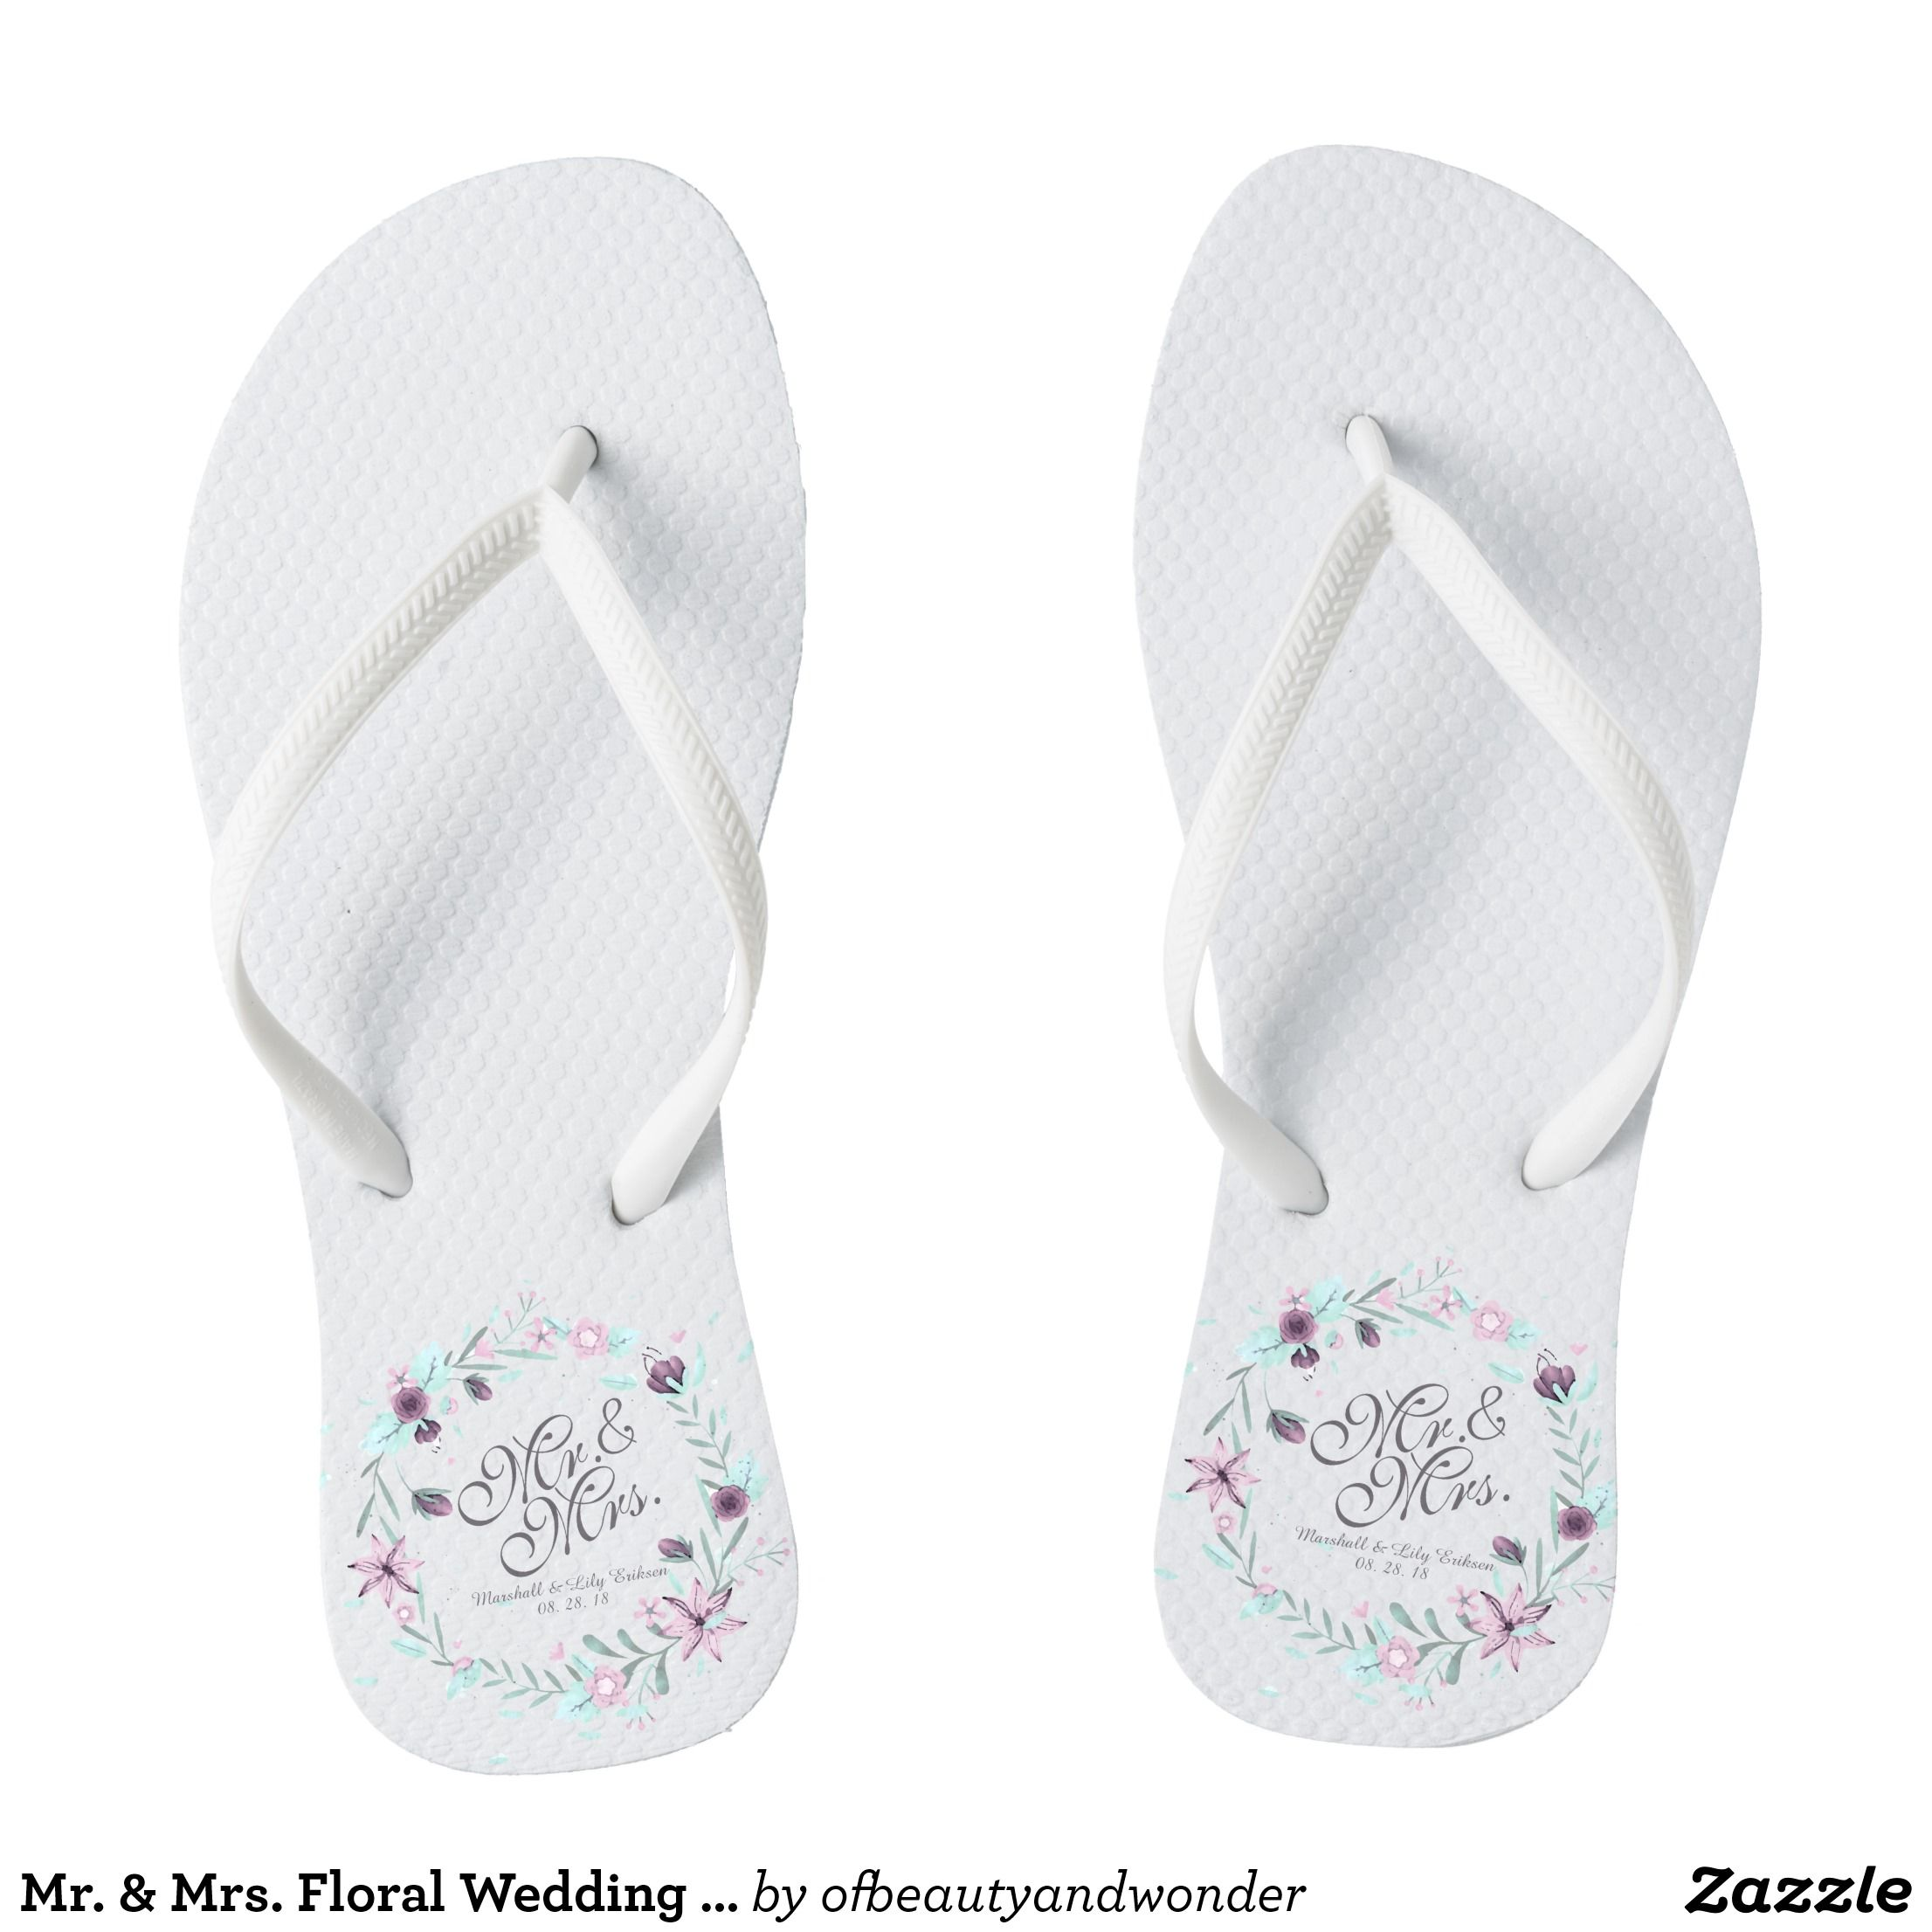 6354624a767c Mr.   Mrs. Floral Wedding Flip Flops - Durable Thong Style Hawaiian Beach  Sandals By Talented Fashion   Graphic Designers -  sandals  flipflops   hawaii ...